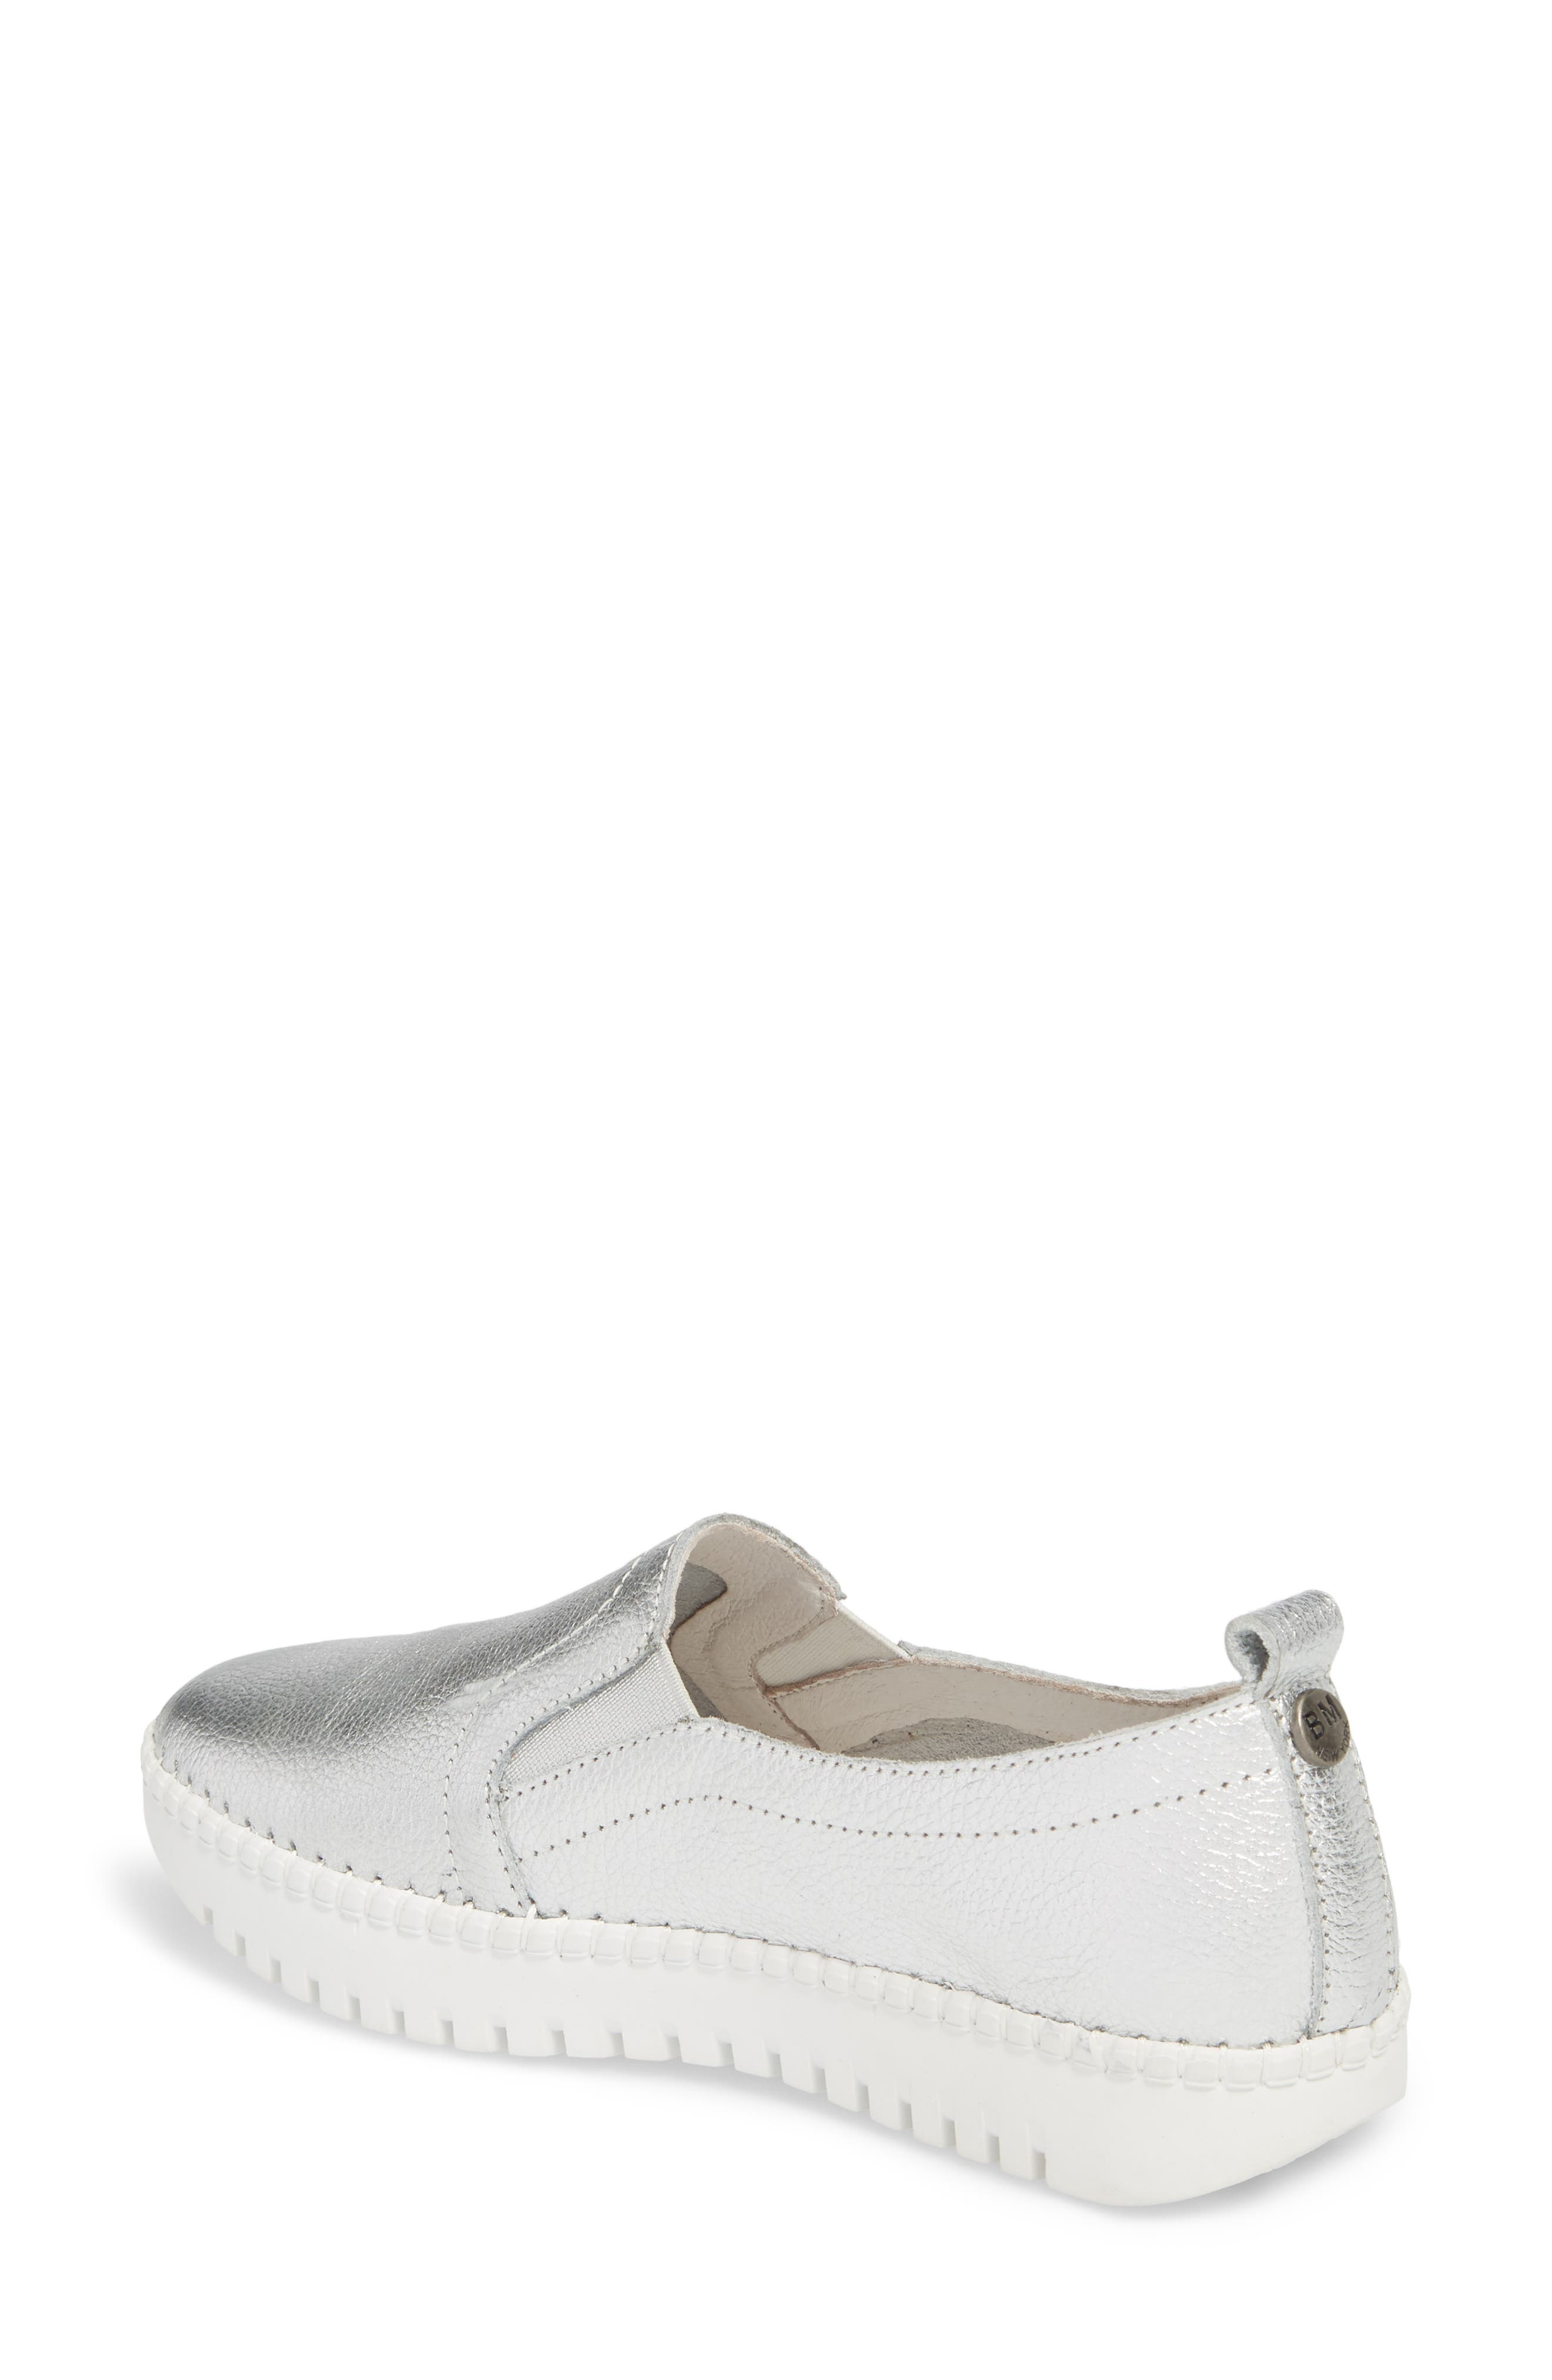 TW 82 Sneaker,                             Alternate thumbnail 2, color,                             Silver Leather